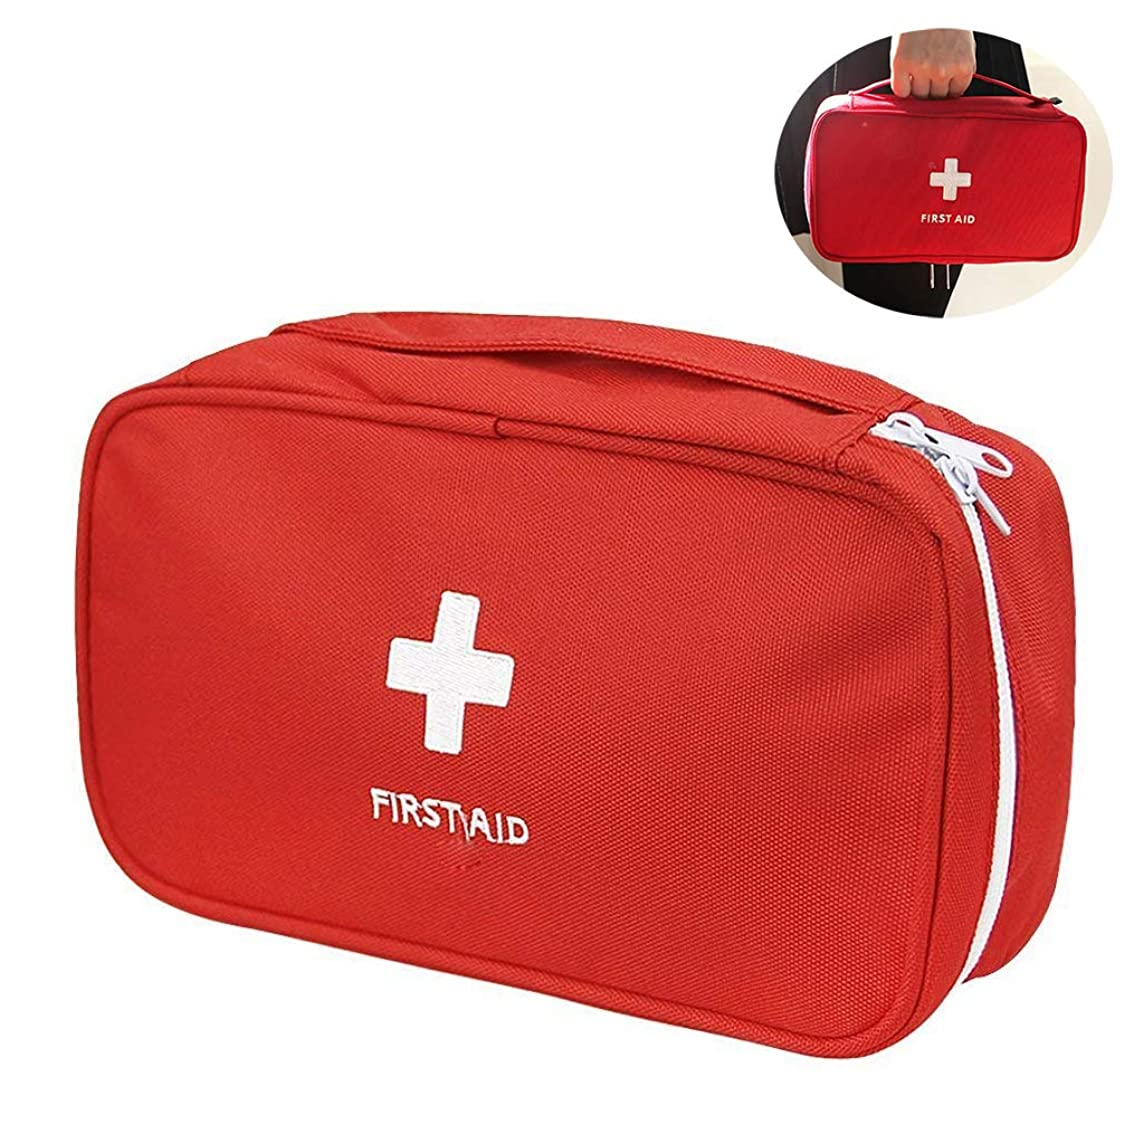 iMapo Portable Mini First Aid Kit, Empty Travel Medicine Bag, Small Medical Organizer Storage Pouch, Pill Drug Package Container for Outdoor Activities Sports Camping Hiking Emergency (Bag ONLY)